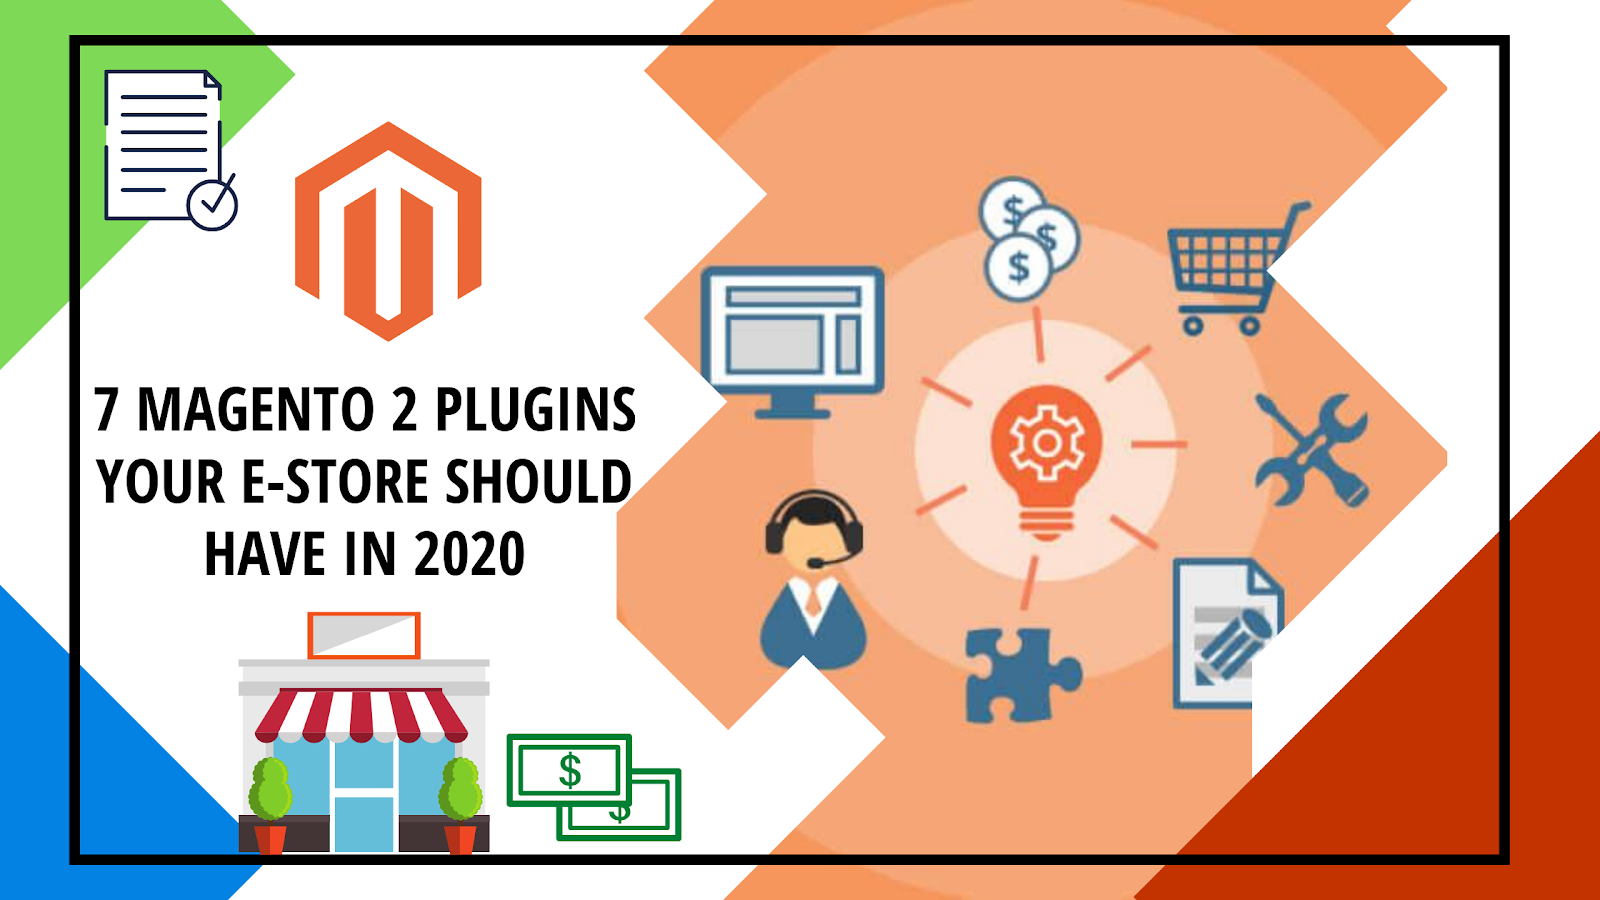 7 Magento 2 Plugins Your e-Store Should Have in 2020